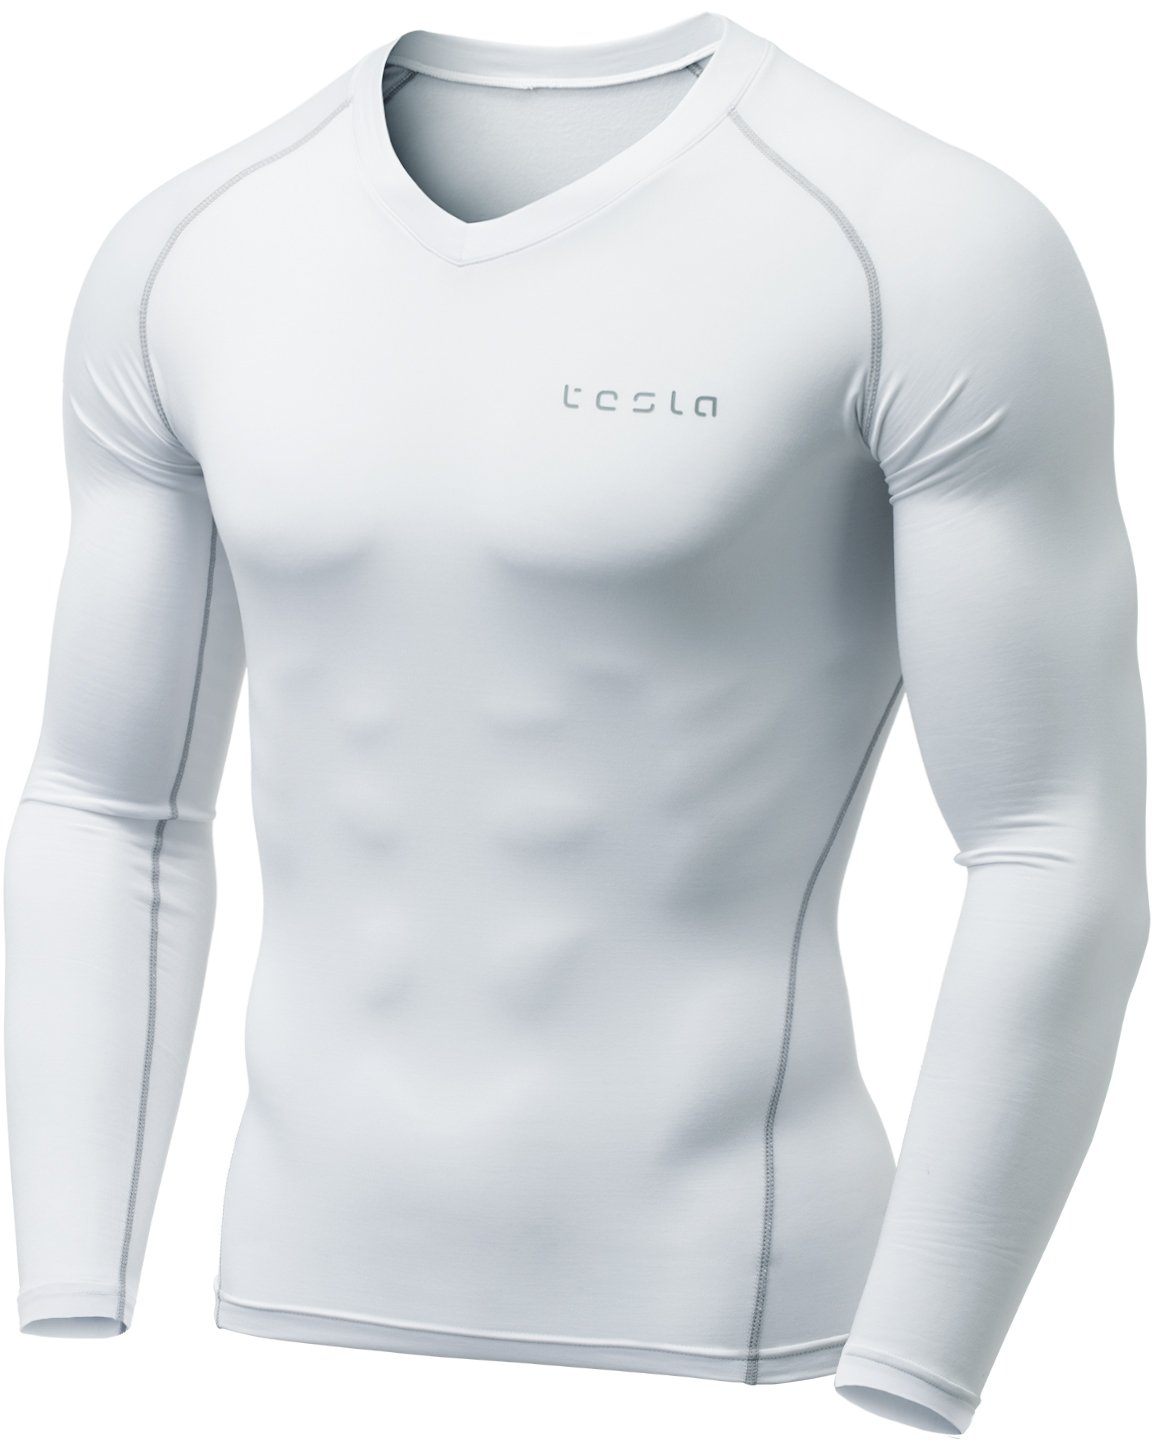 TSLA Men's Thermal Wintergear Compression Baselayer Vneck Long Sleeve Top, Thermal V Neck(yuv34) - White, Small by TSLA